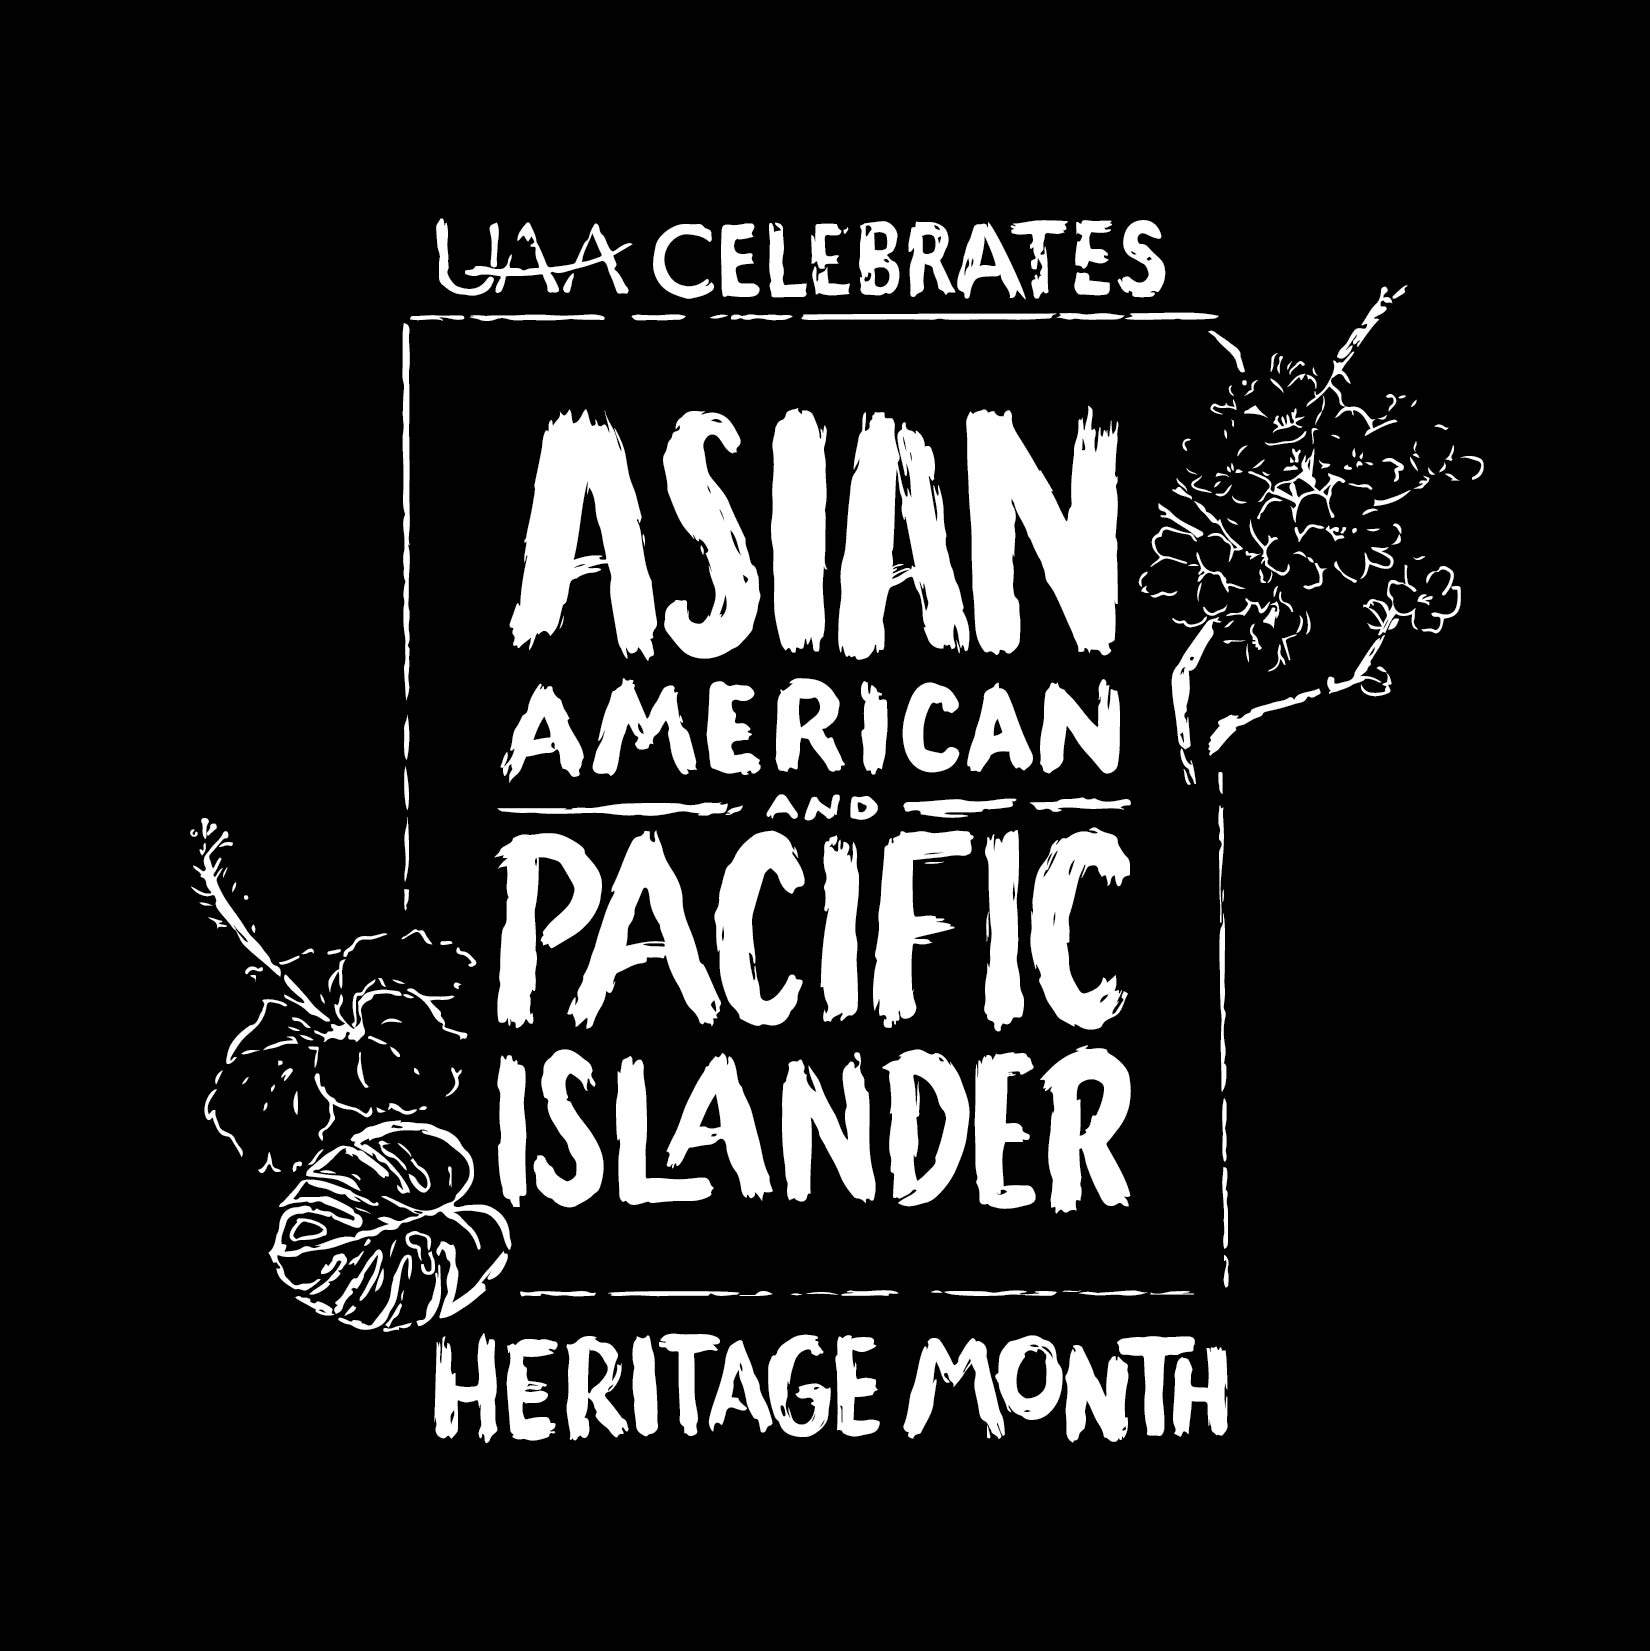 Logo for UAA Asian American and Pacific Islander Heritage Month